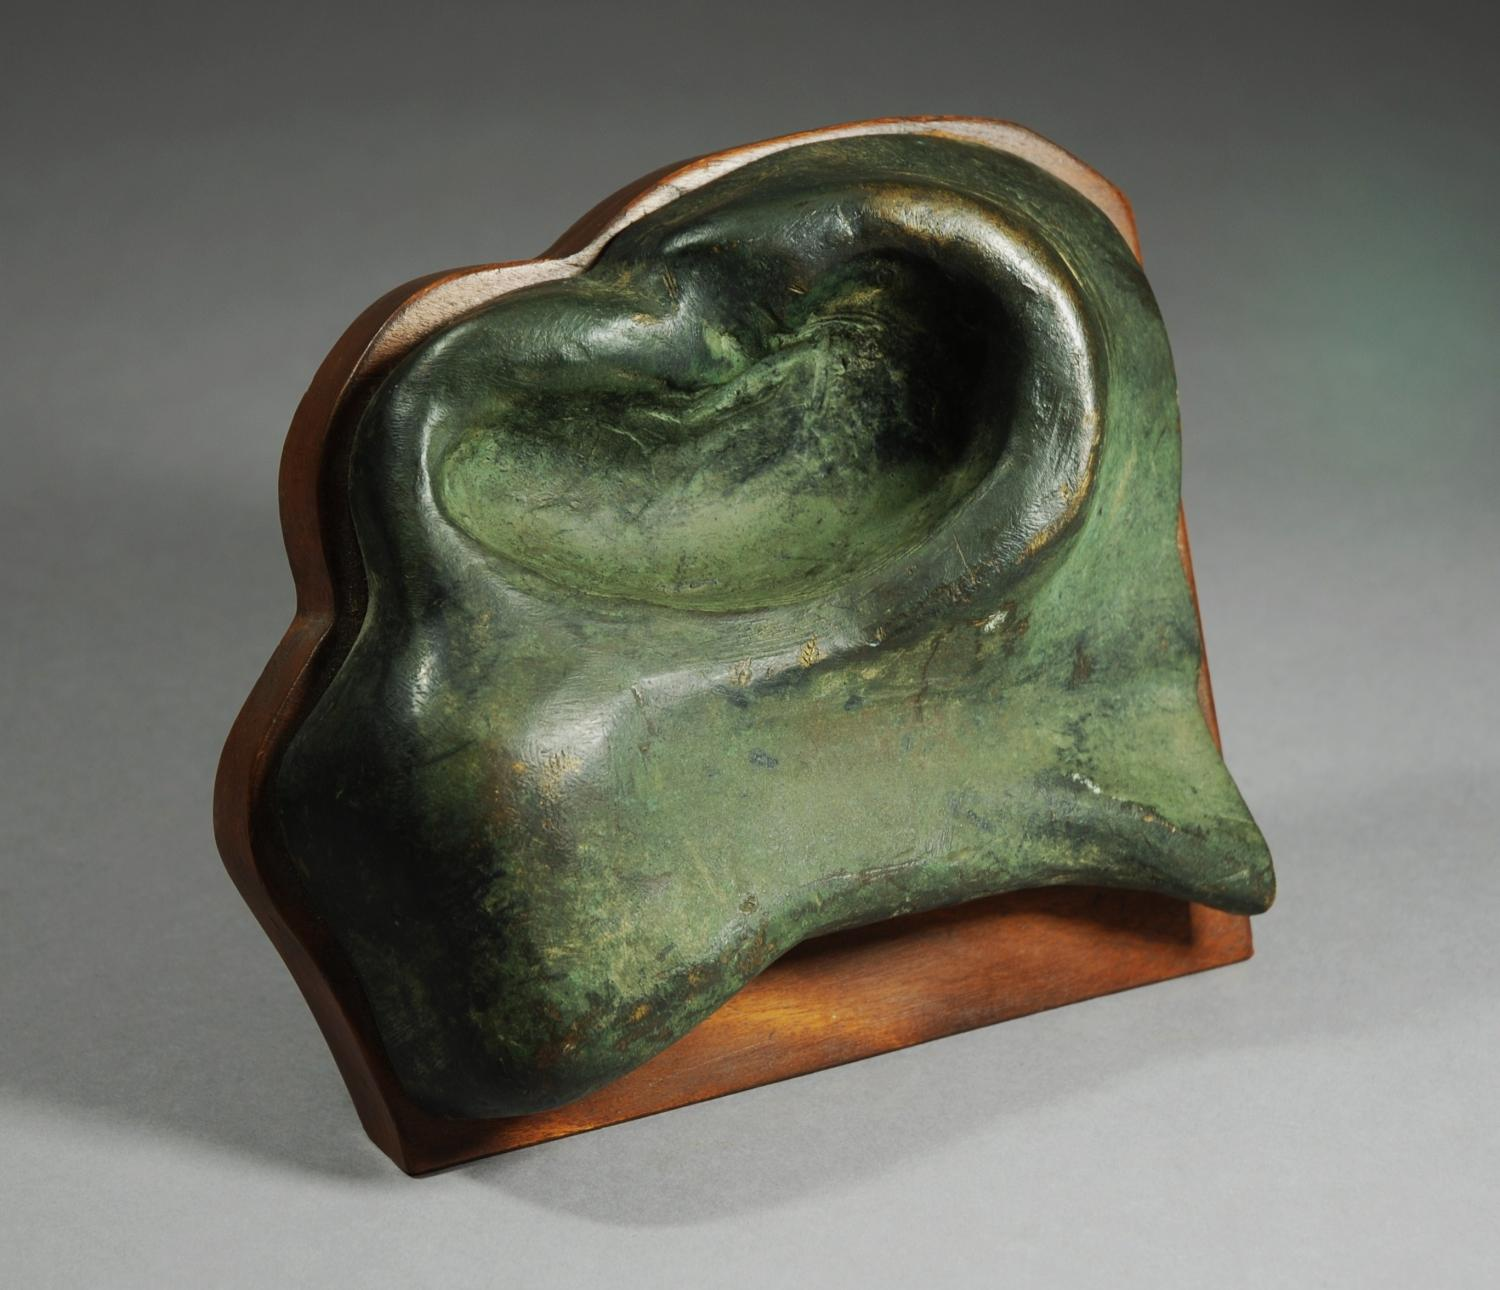 Nostril from a bronze statue of a horse